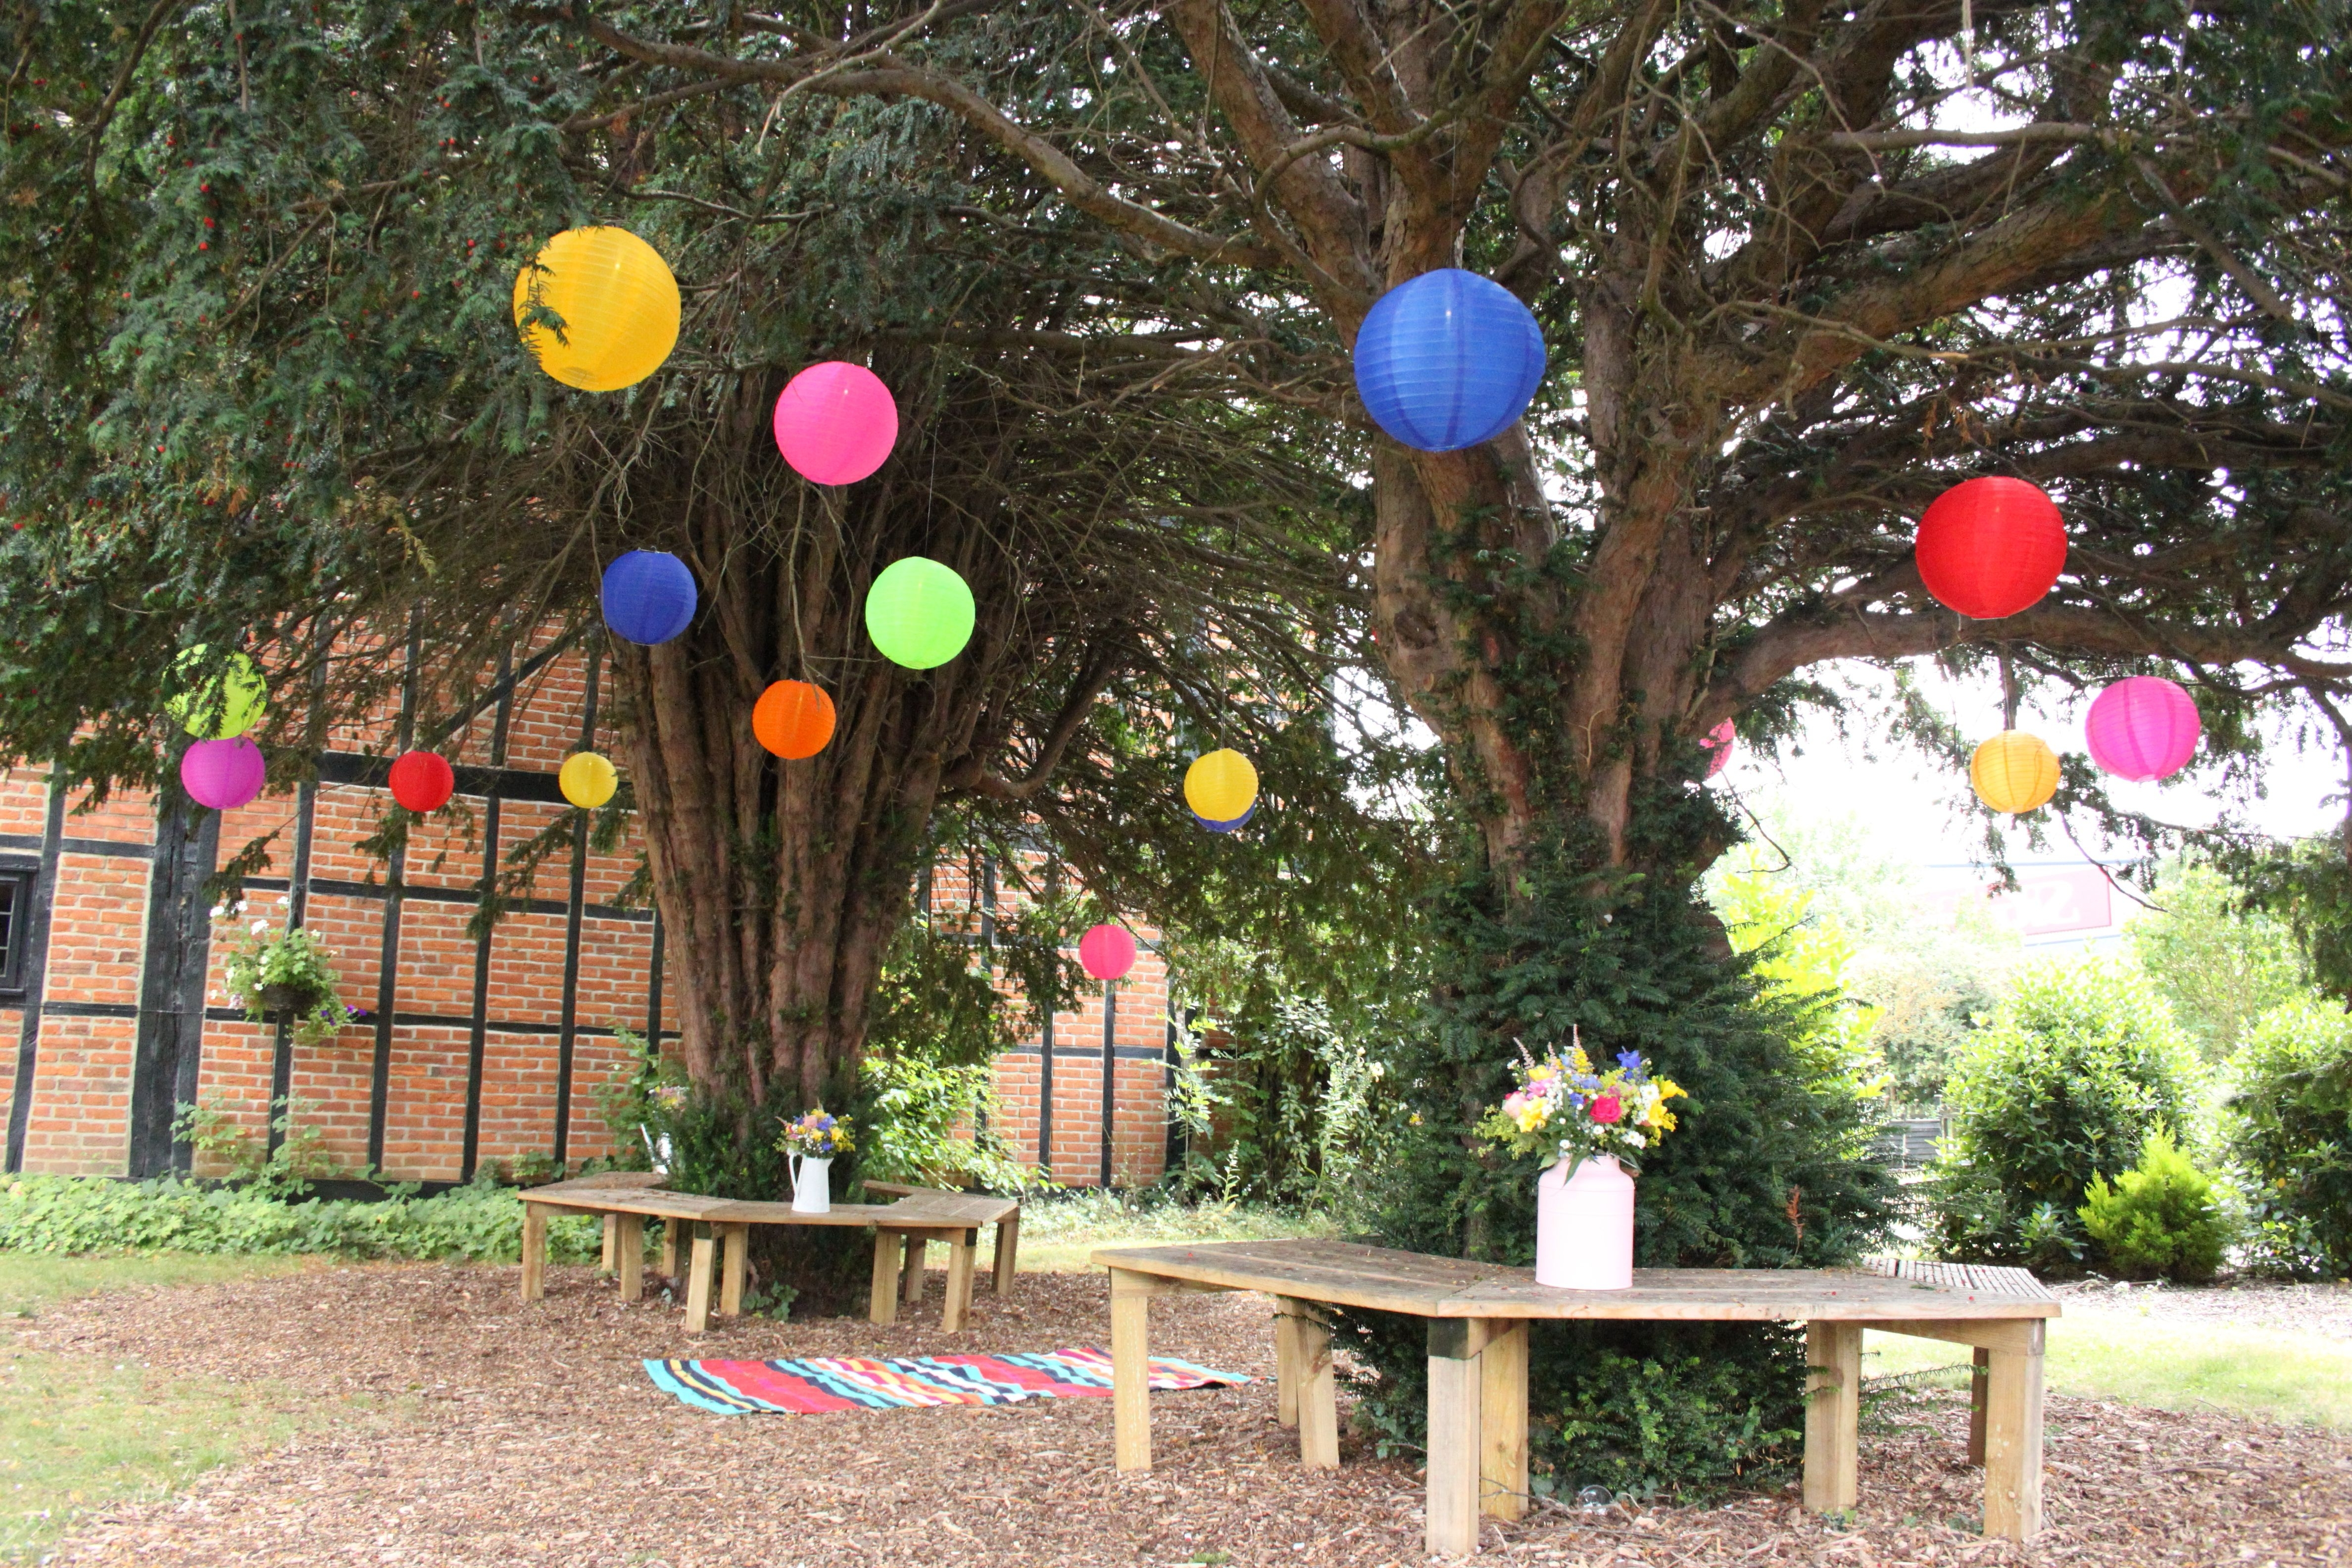 Widely Used Outdoor Nylon Lanterns In Mad Hatters Outdoor Coloured Nylon Lanterns Hanging Randomly In The (View 20 of 20)